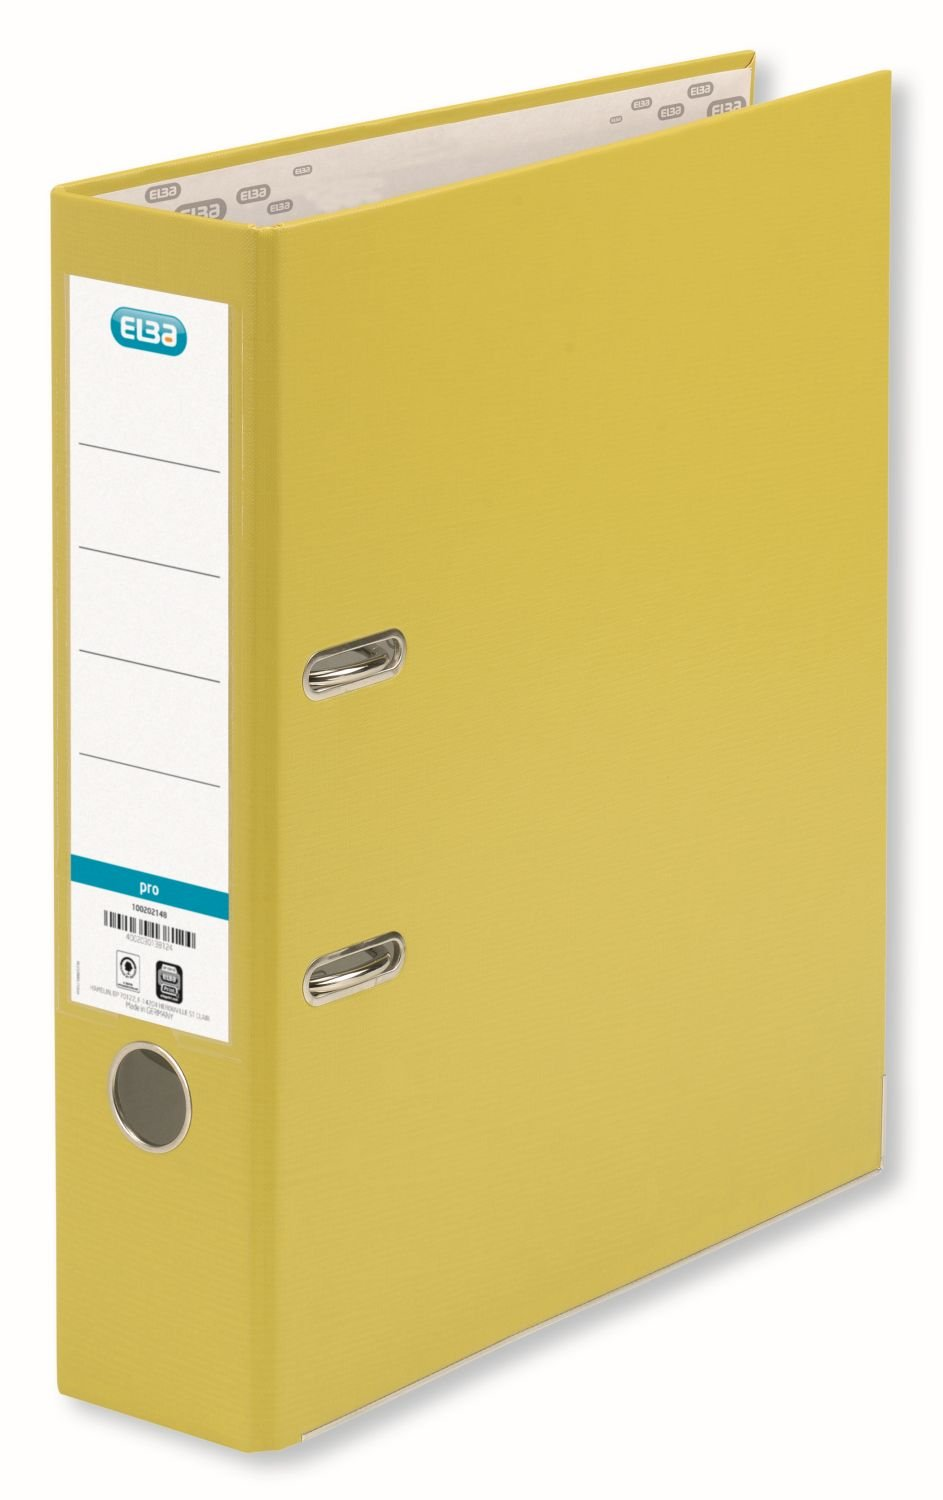 Elba 754257 - Yellow Arch Folder A4 Size, Spin: 80mm